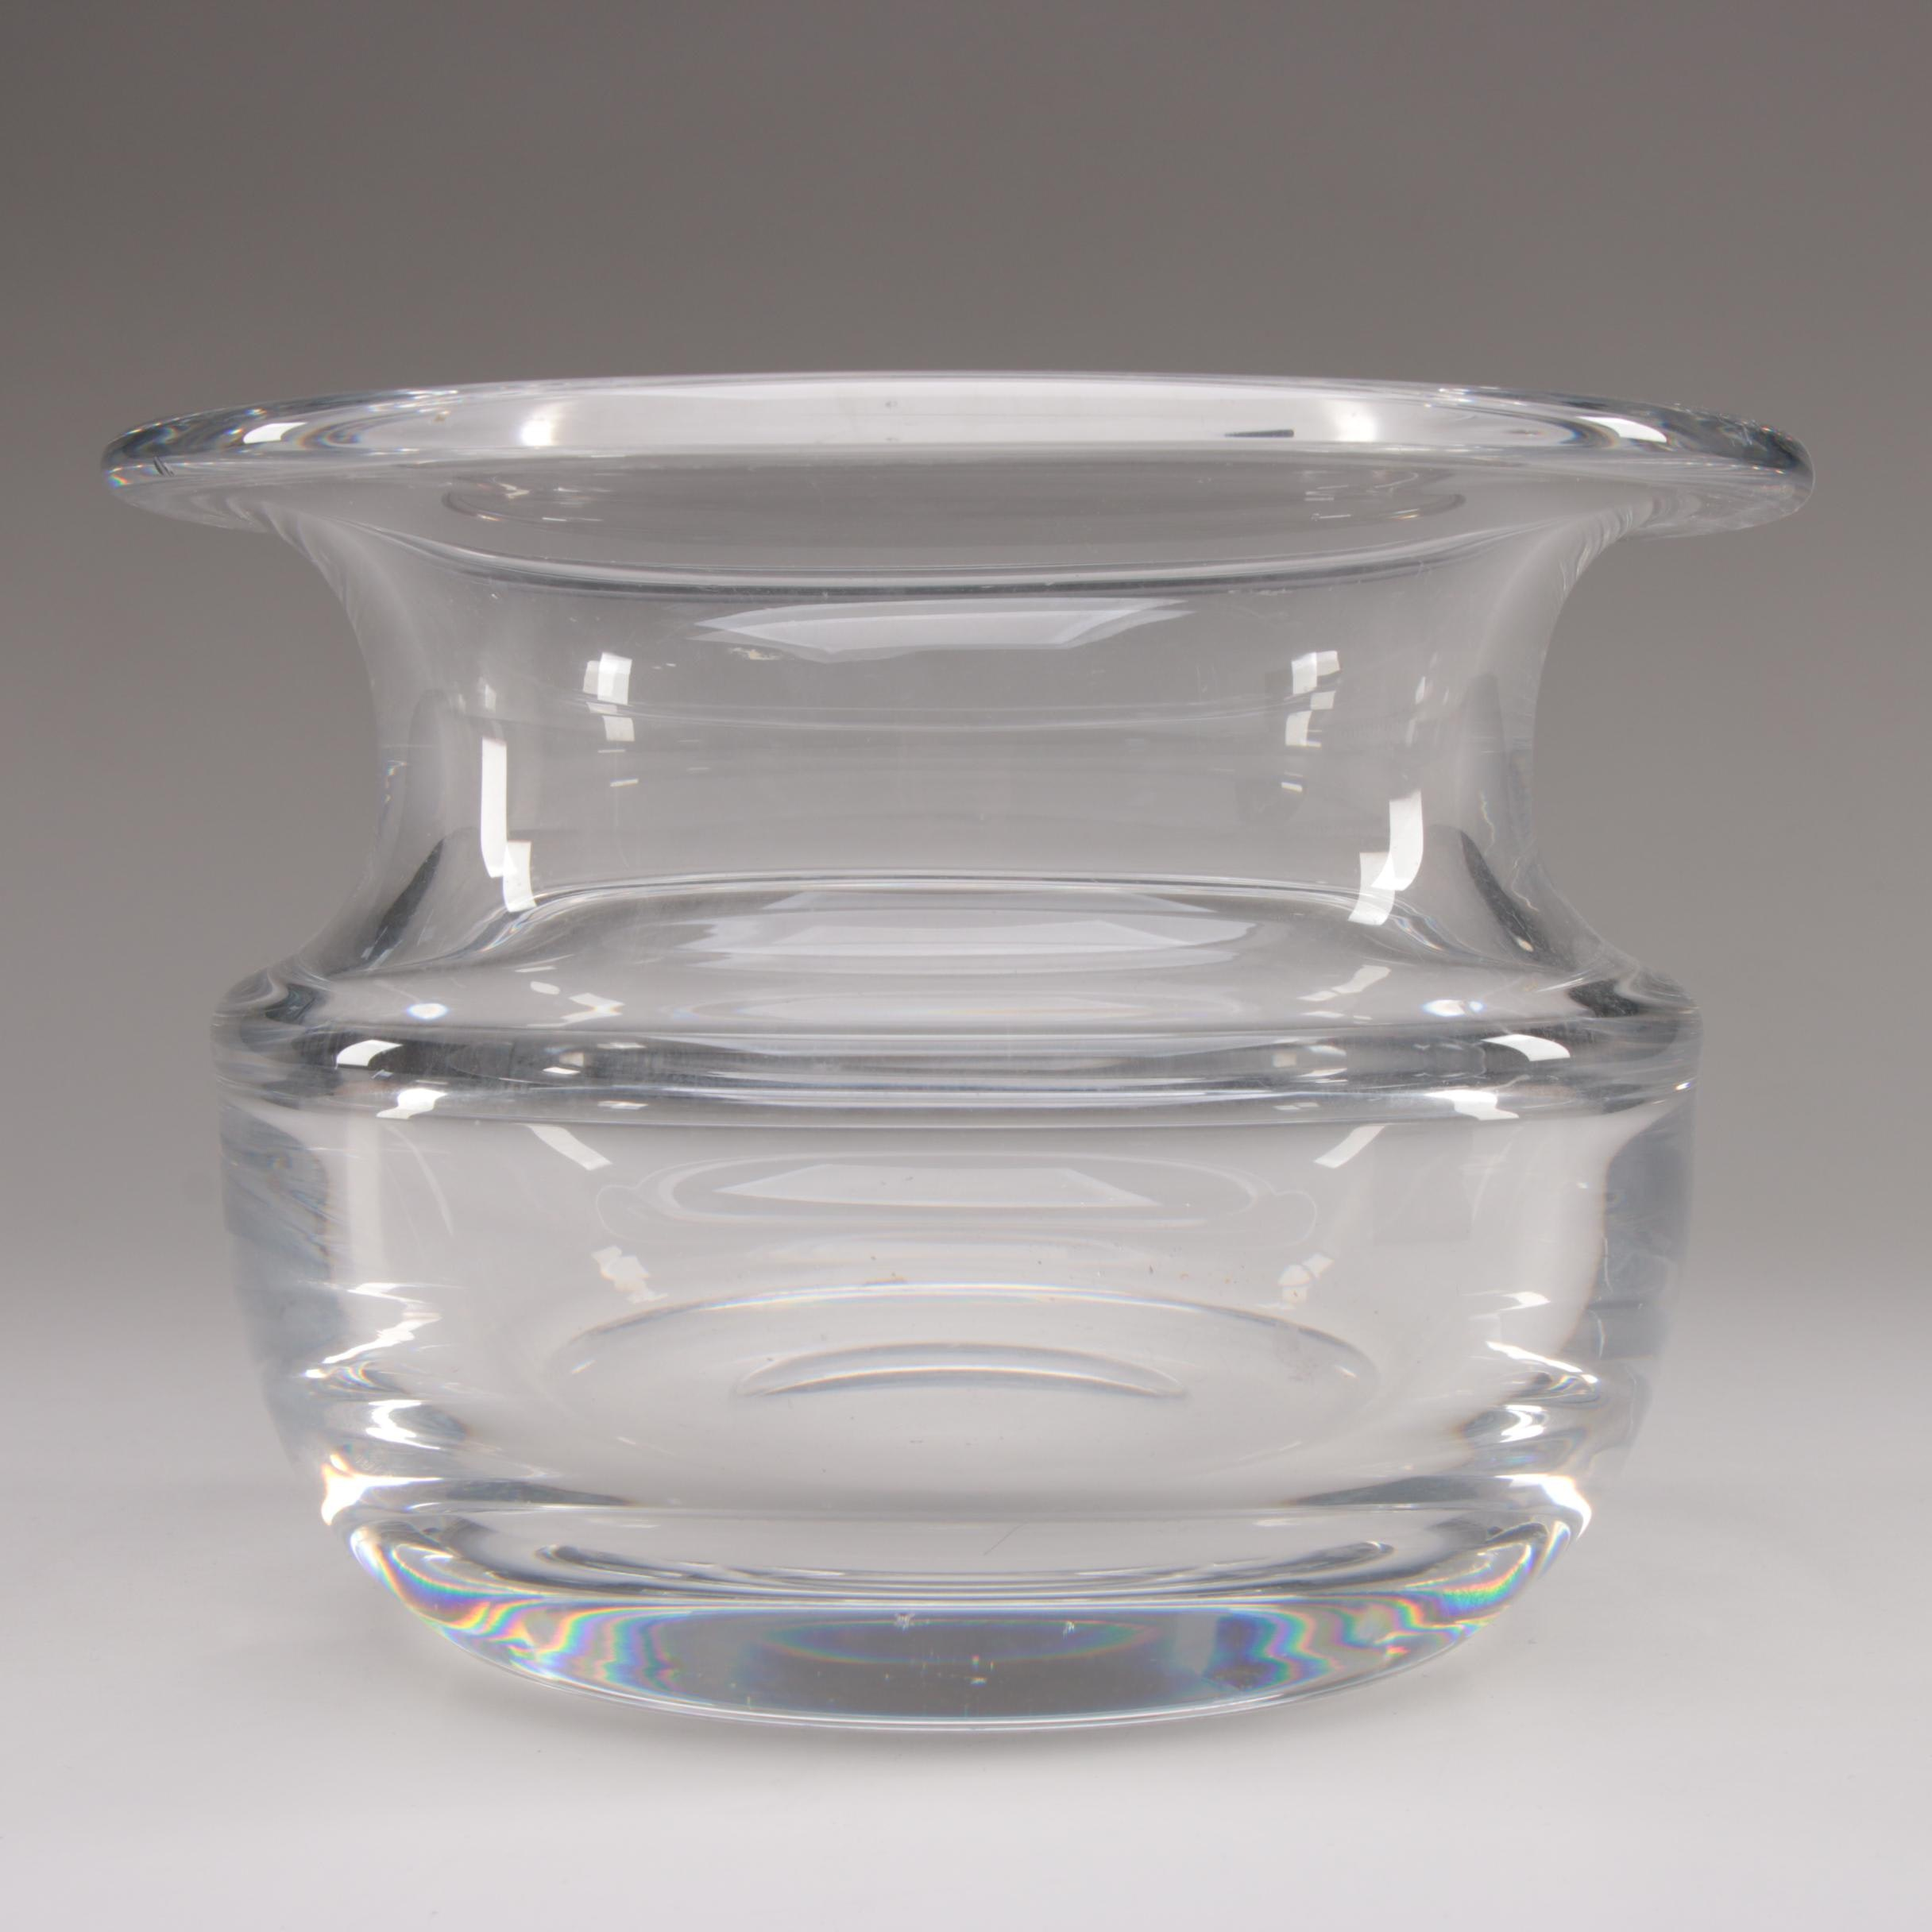 Orrefors Crystal Vase Designed by Olle Alberius, Circa 1980s